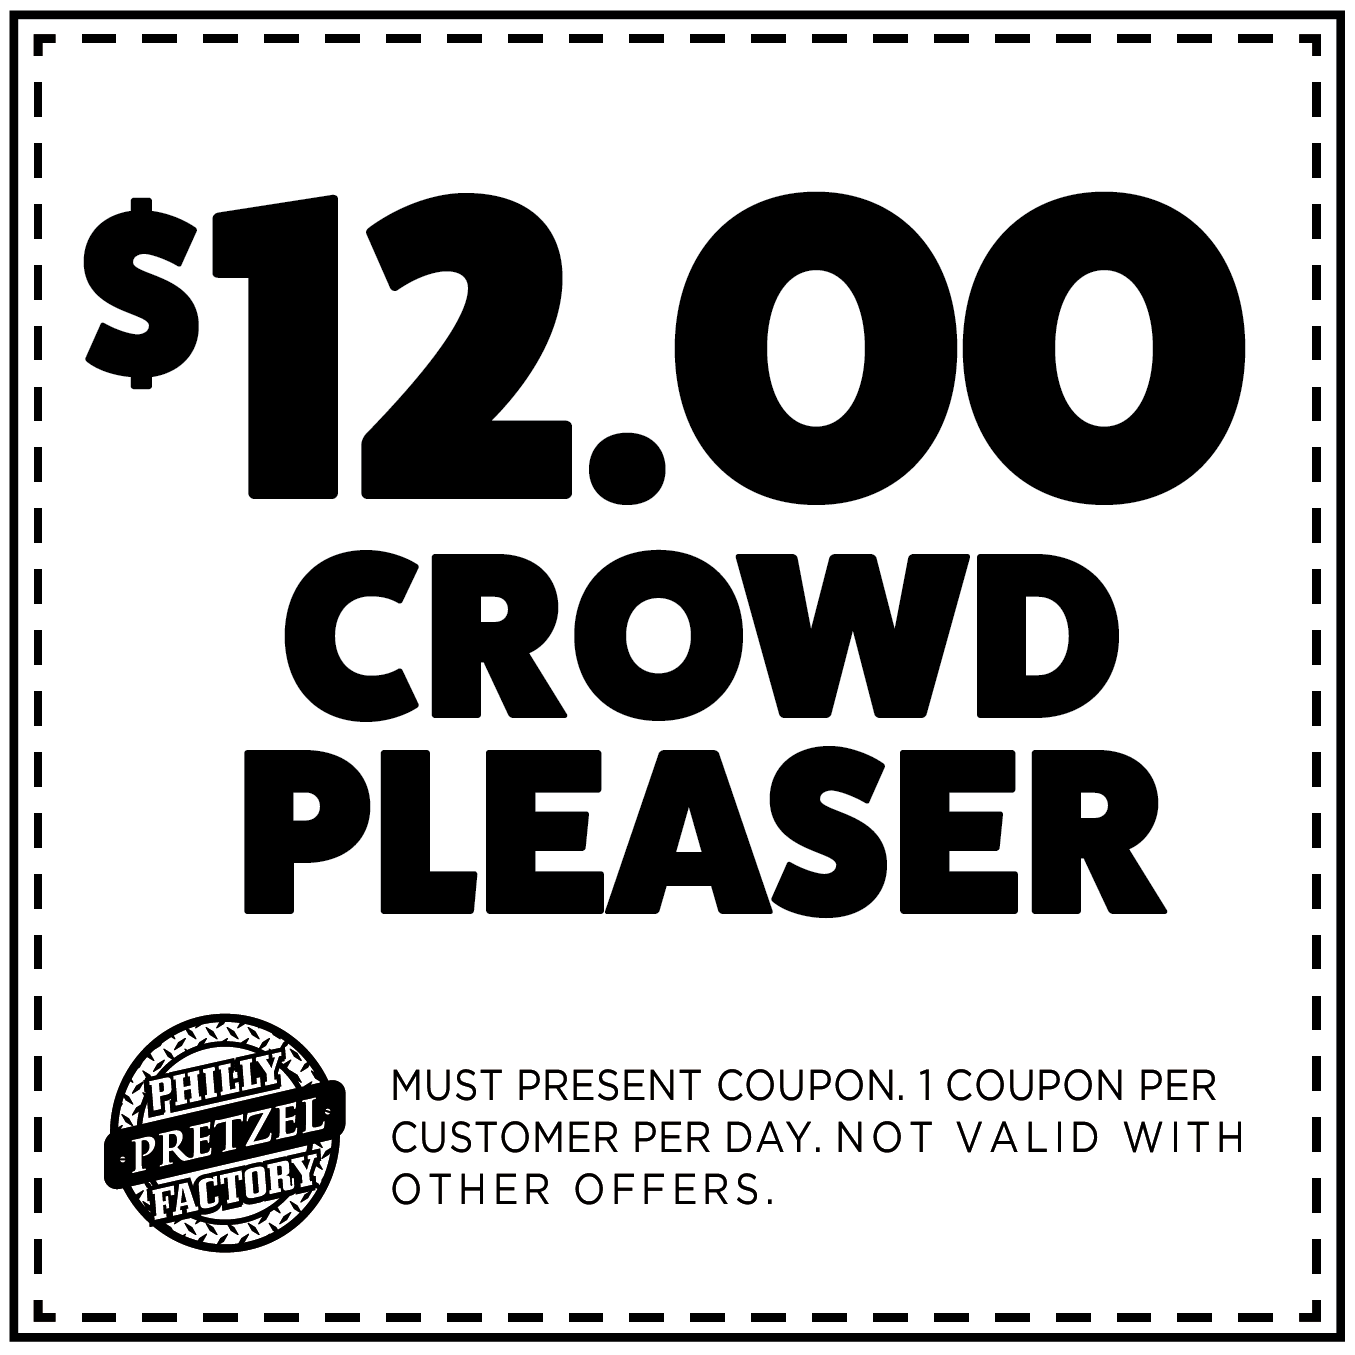 $12.00 Crowd Pleaser